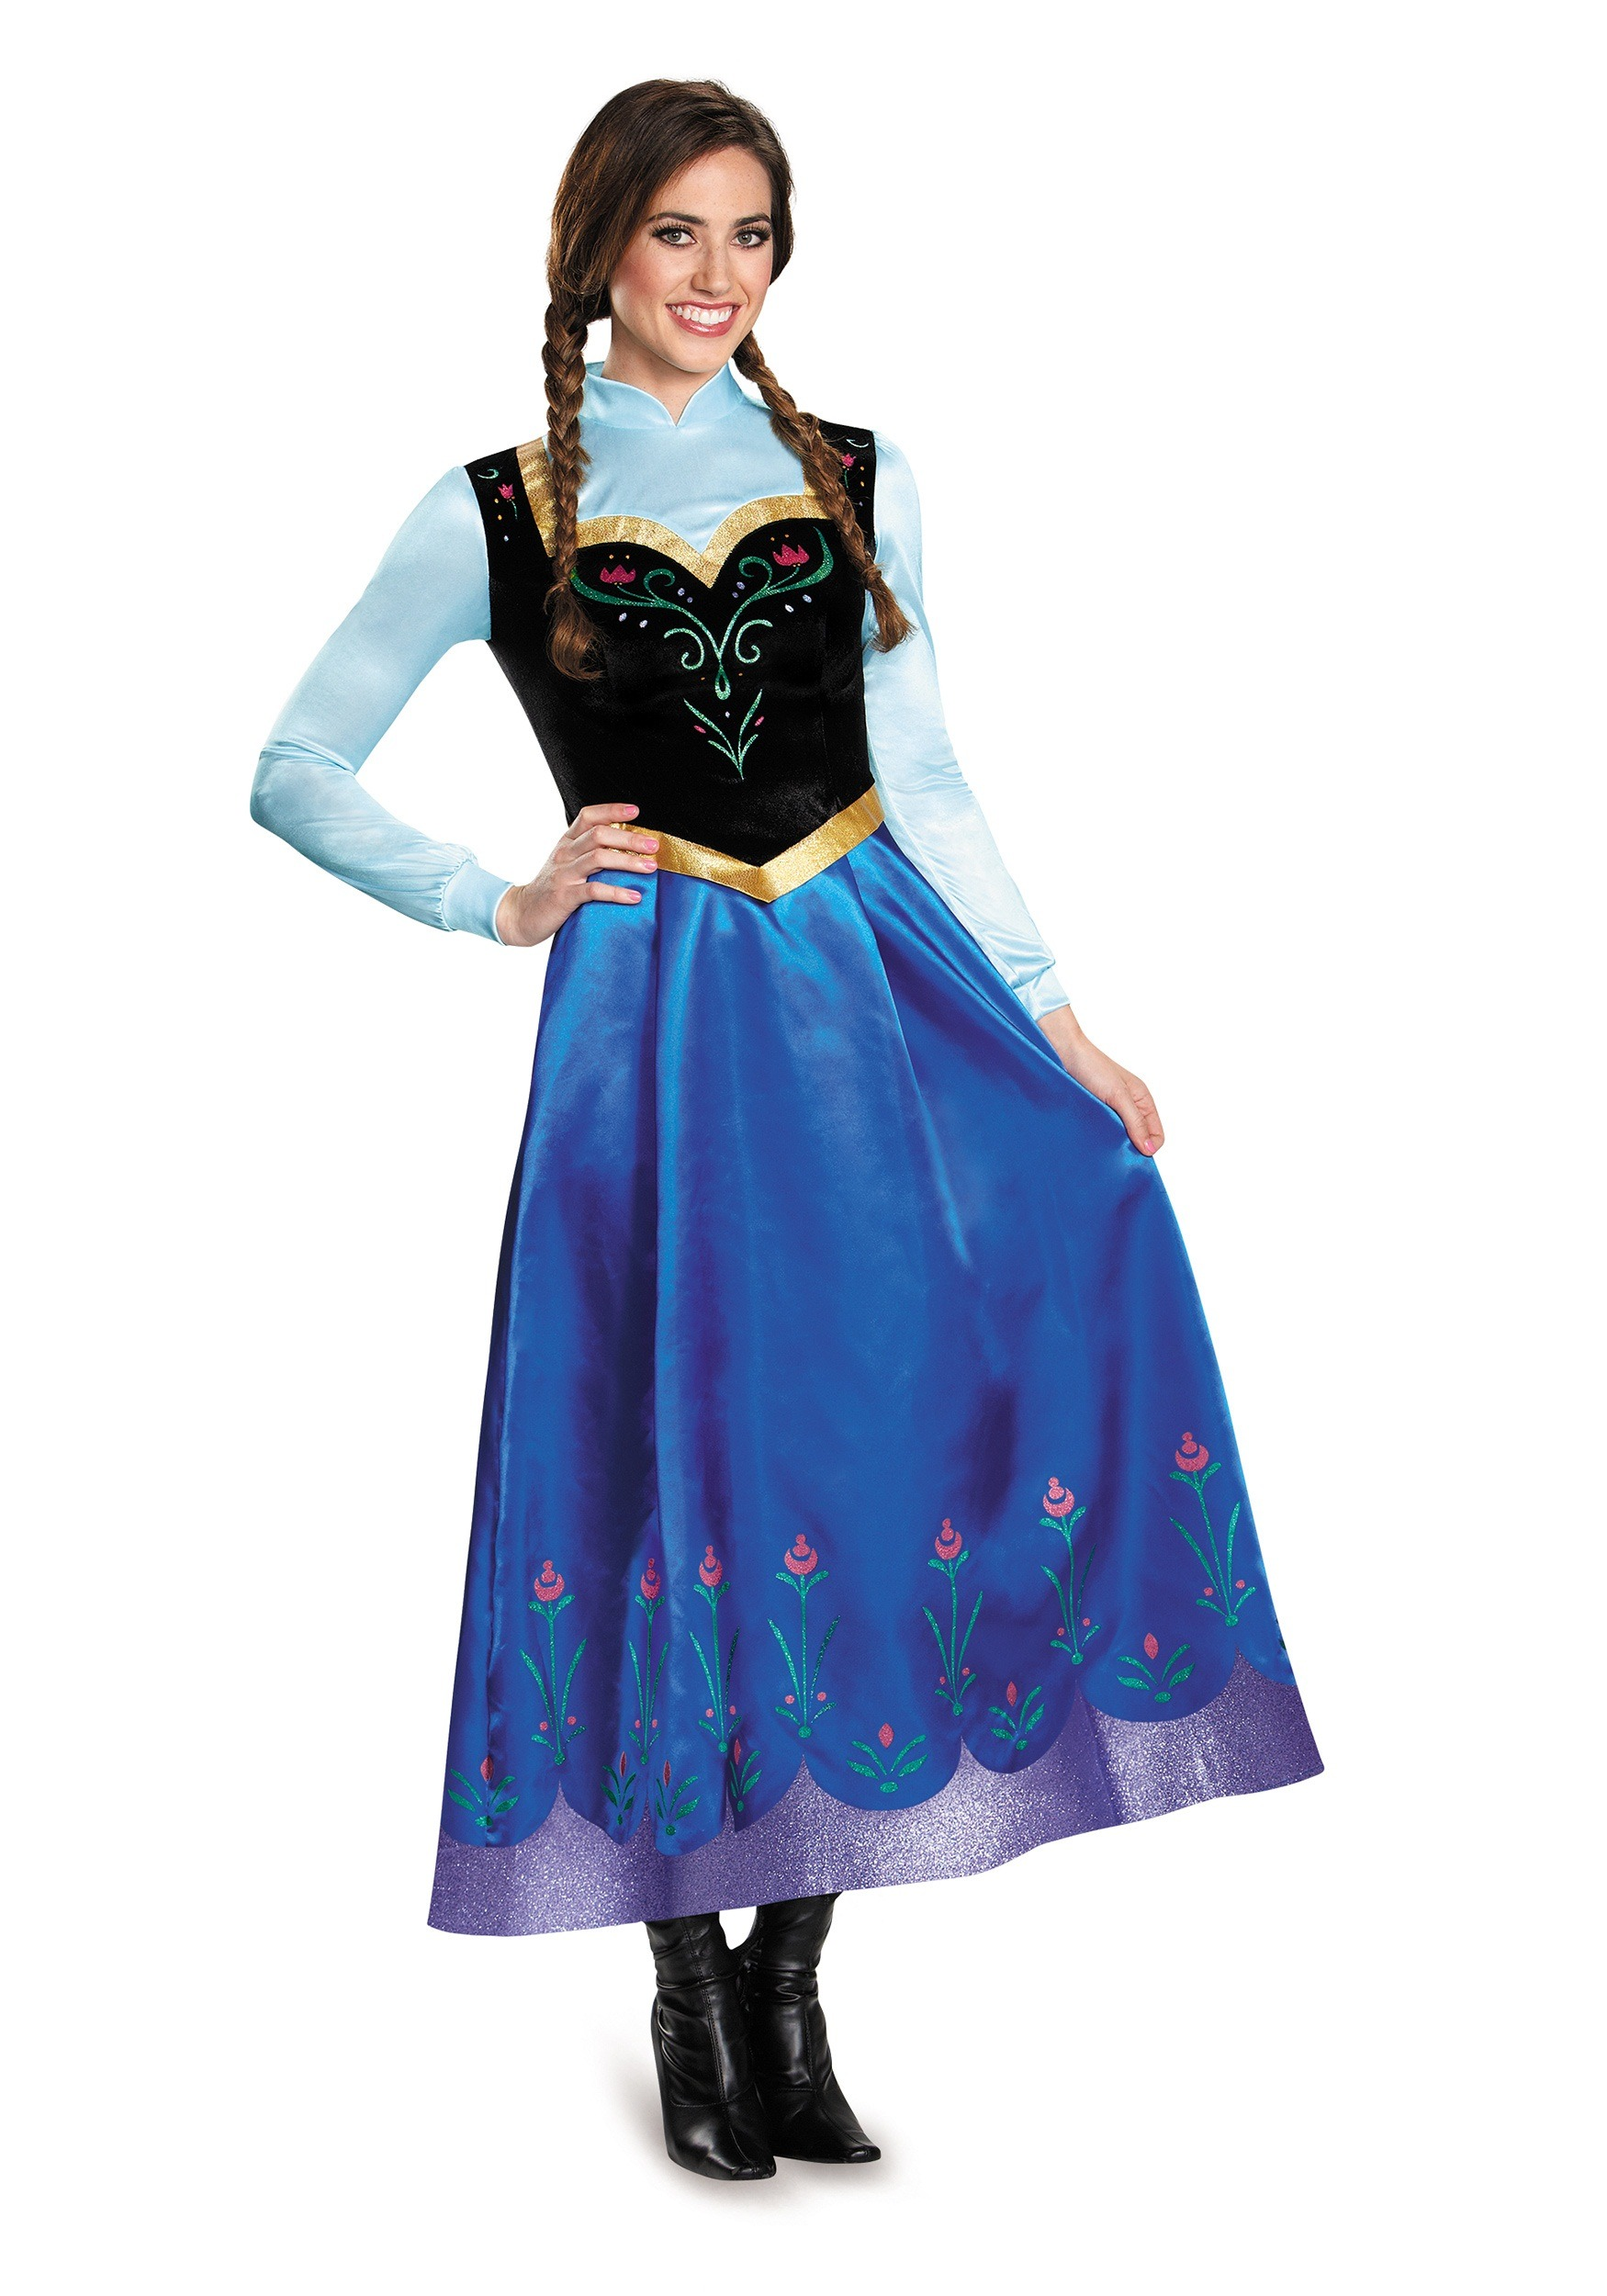 Amazing Where Can You Find Frozen Disney Elsa Costumes